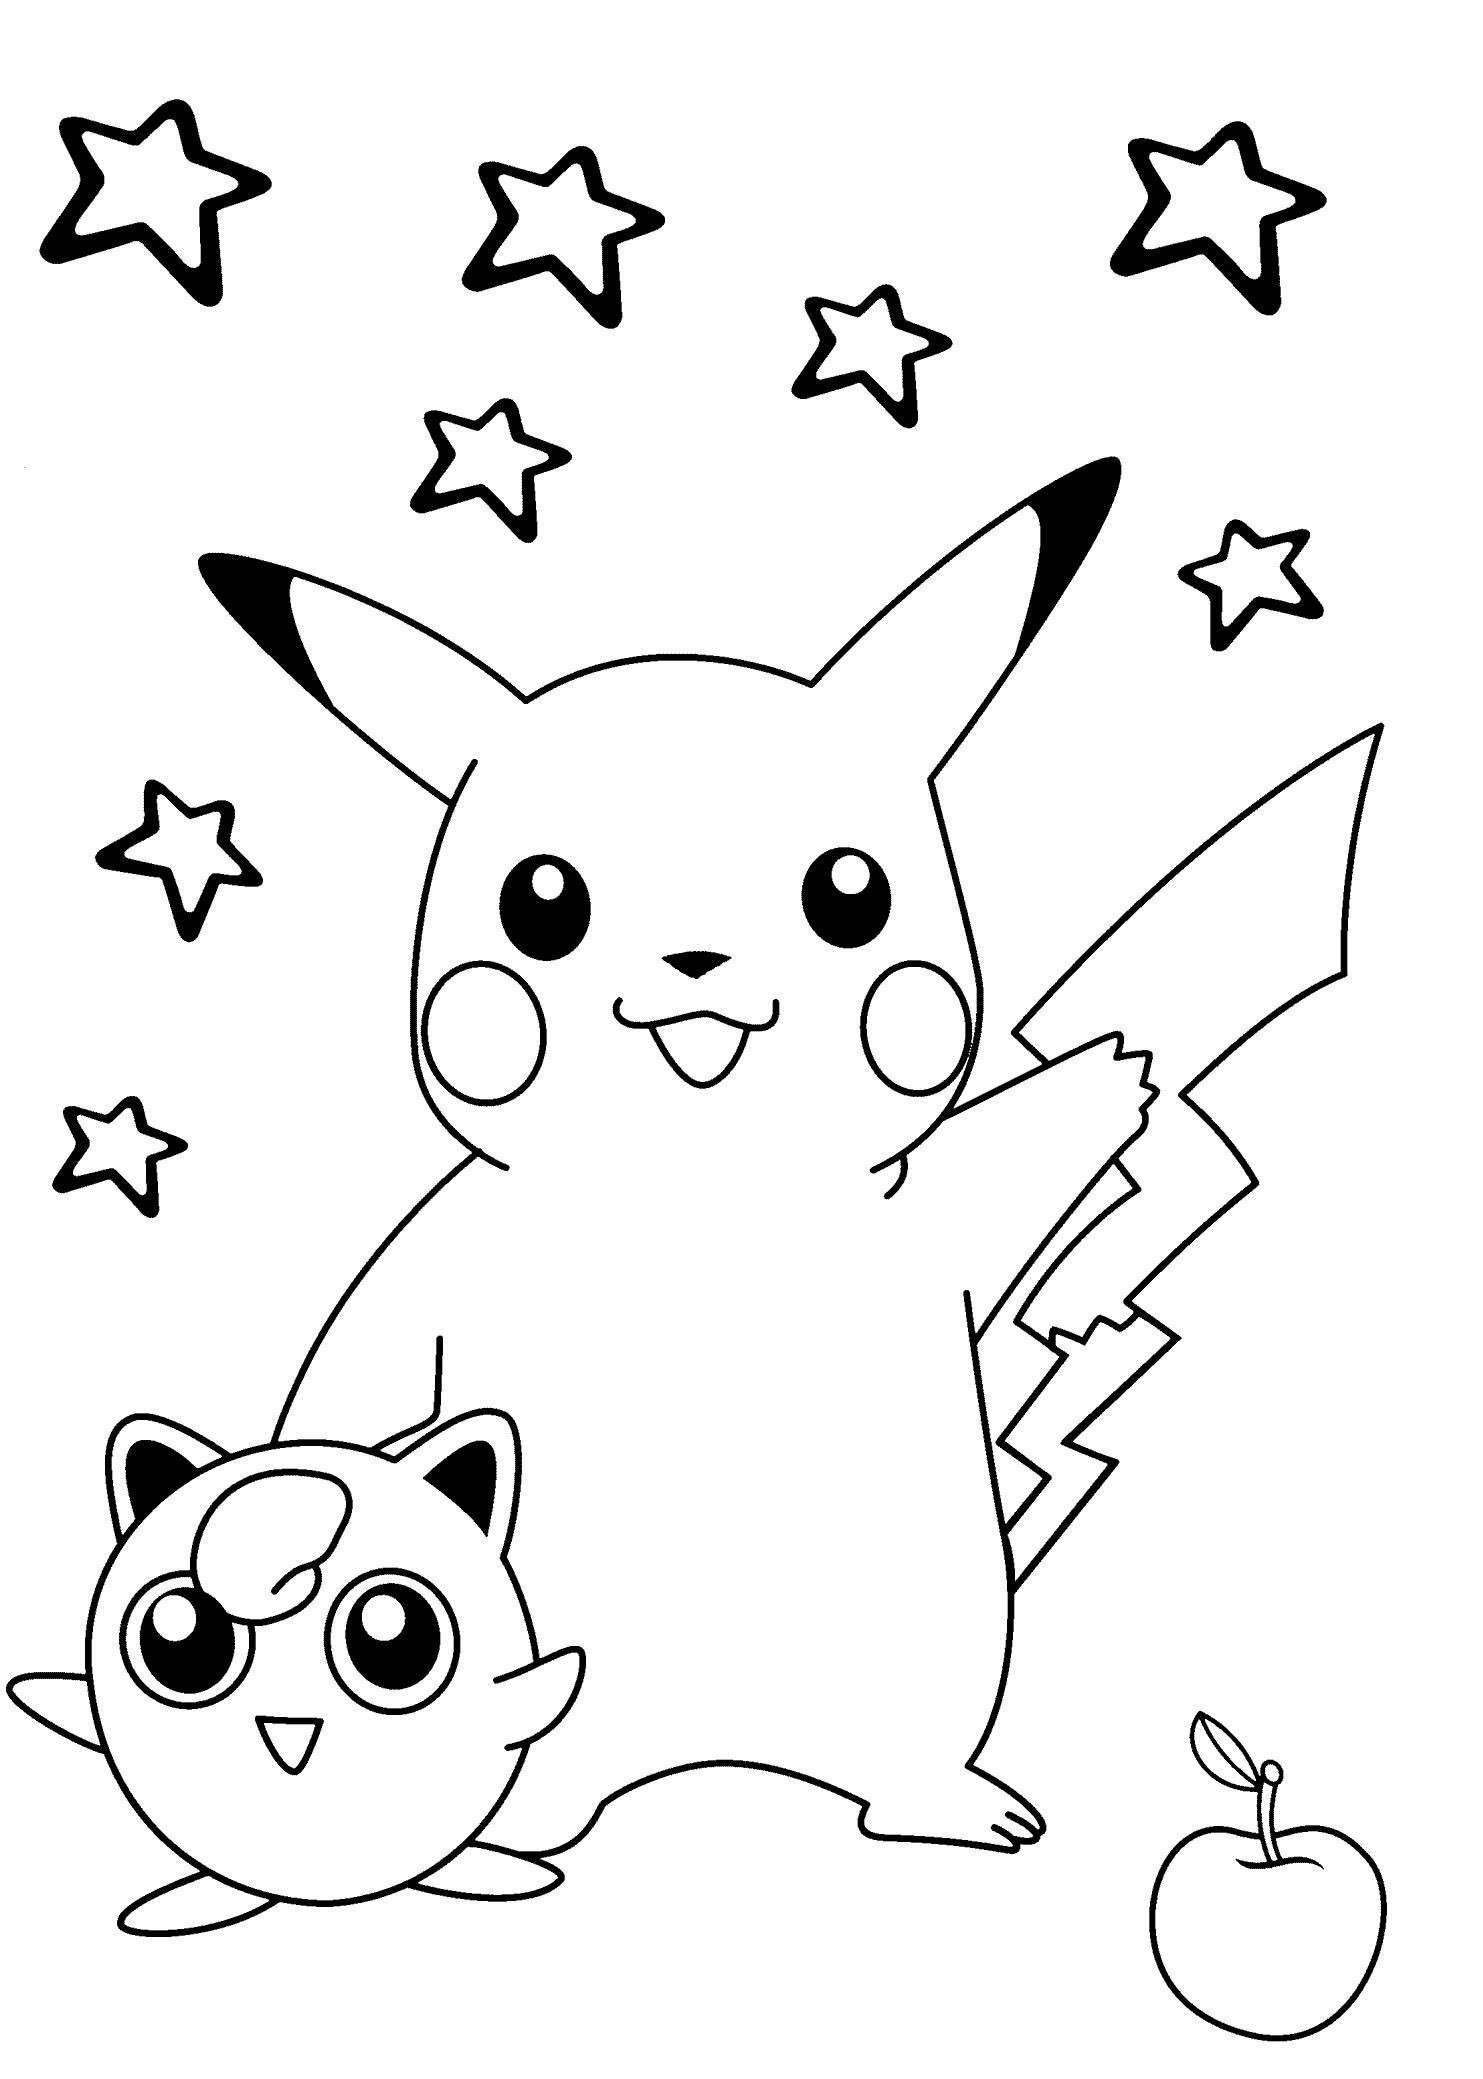 Nick Jr Blaze Coloring Pages At Getcolorings